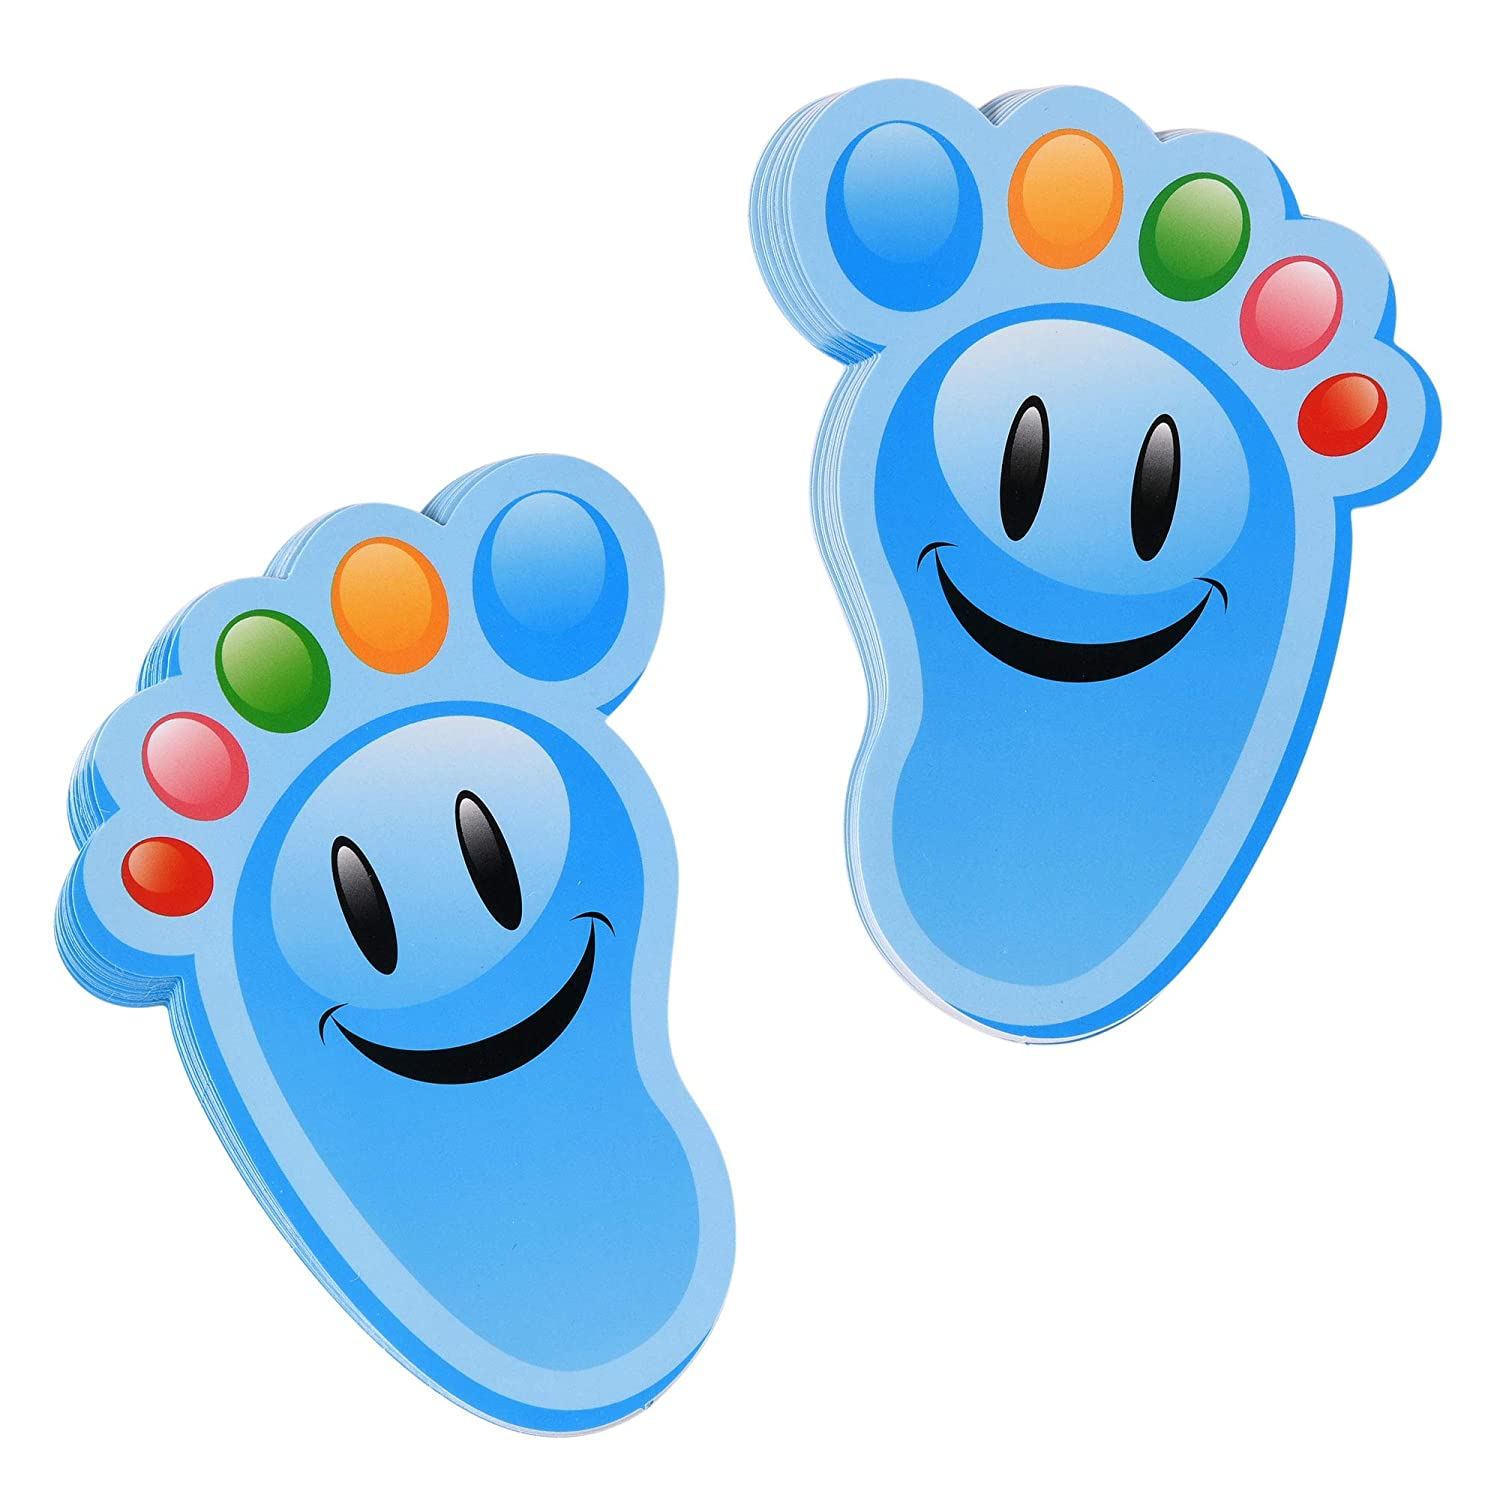 Outlet Raleigh Mall SALE Bluecell 15-Pairs Cartoon Guide Sticker Self-Adhesive Footprints